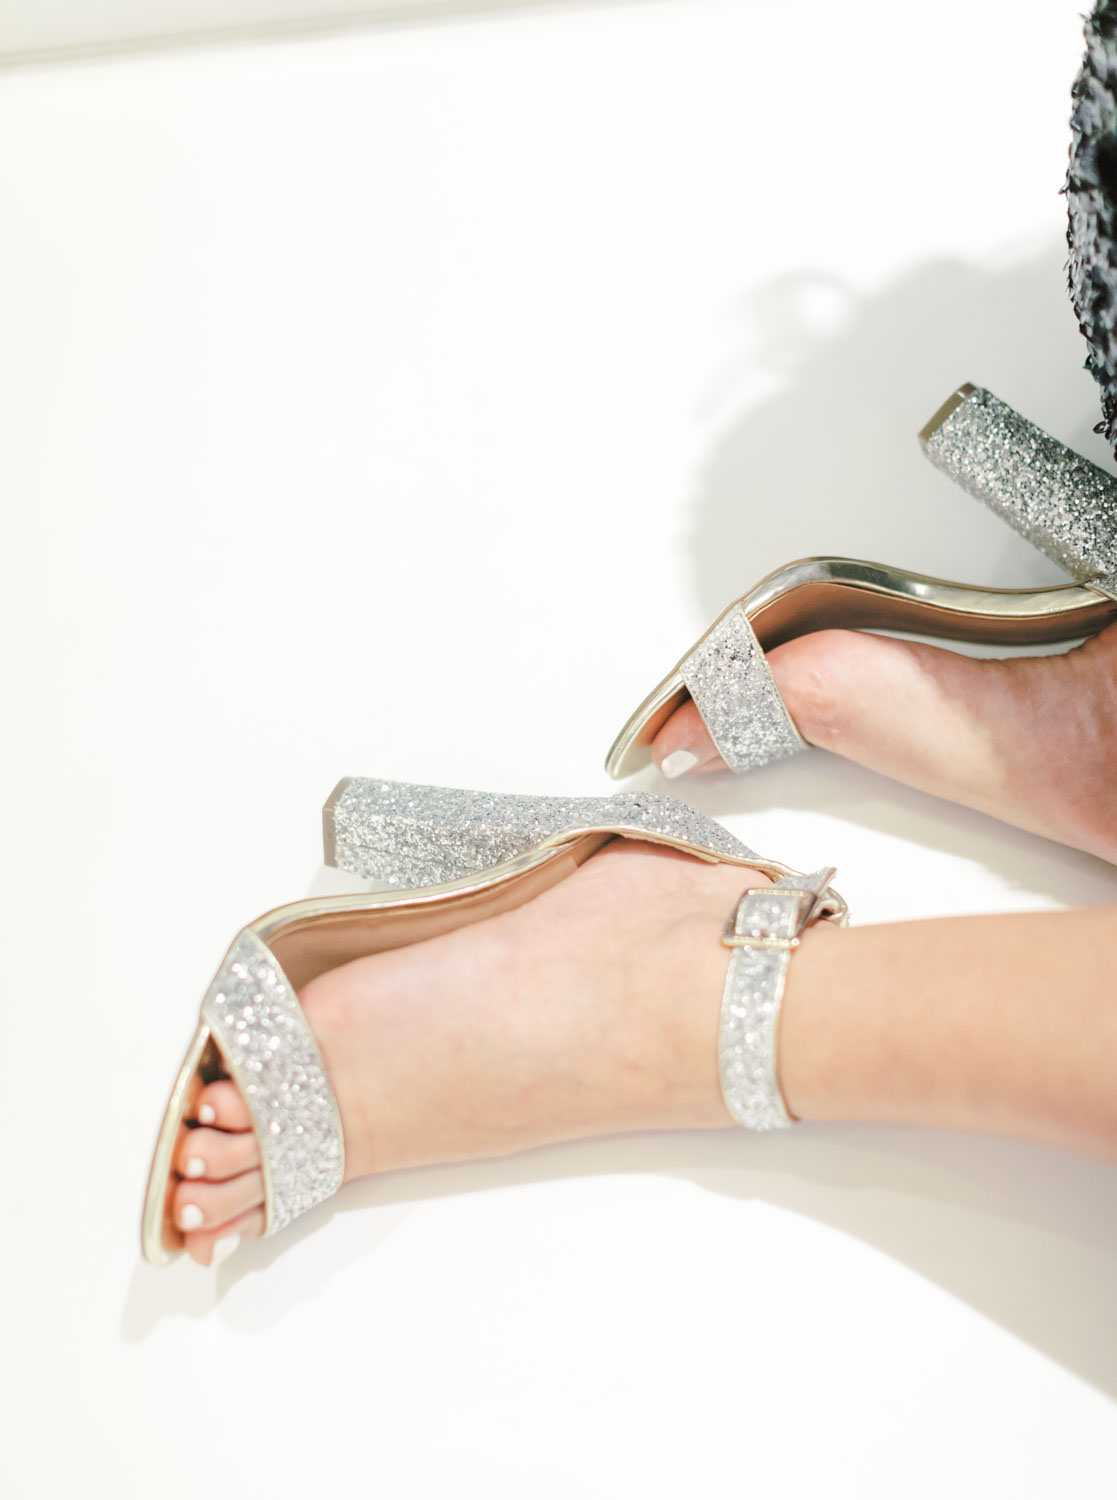 Bride wearing silver glitter heels, Beverly Hills Sprinkles Cupcake Engagement Photos by Cavin Elizabeth Photography